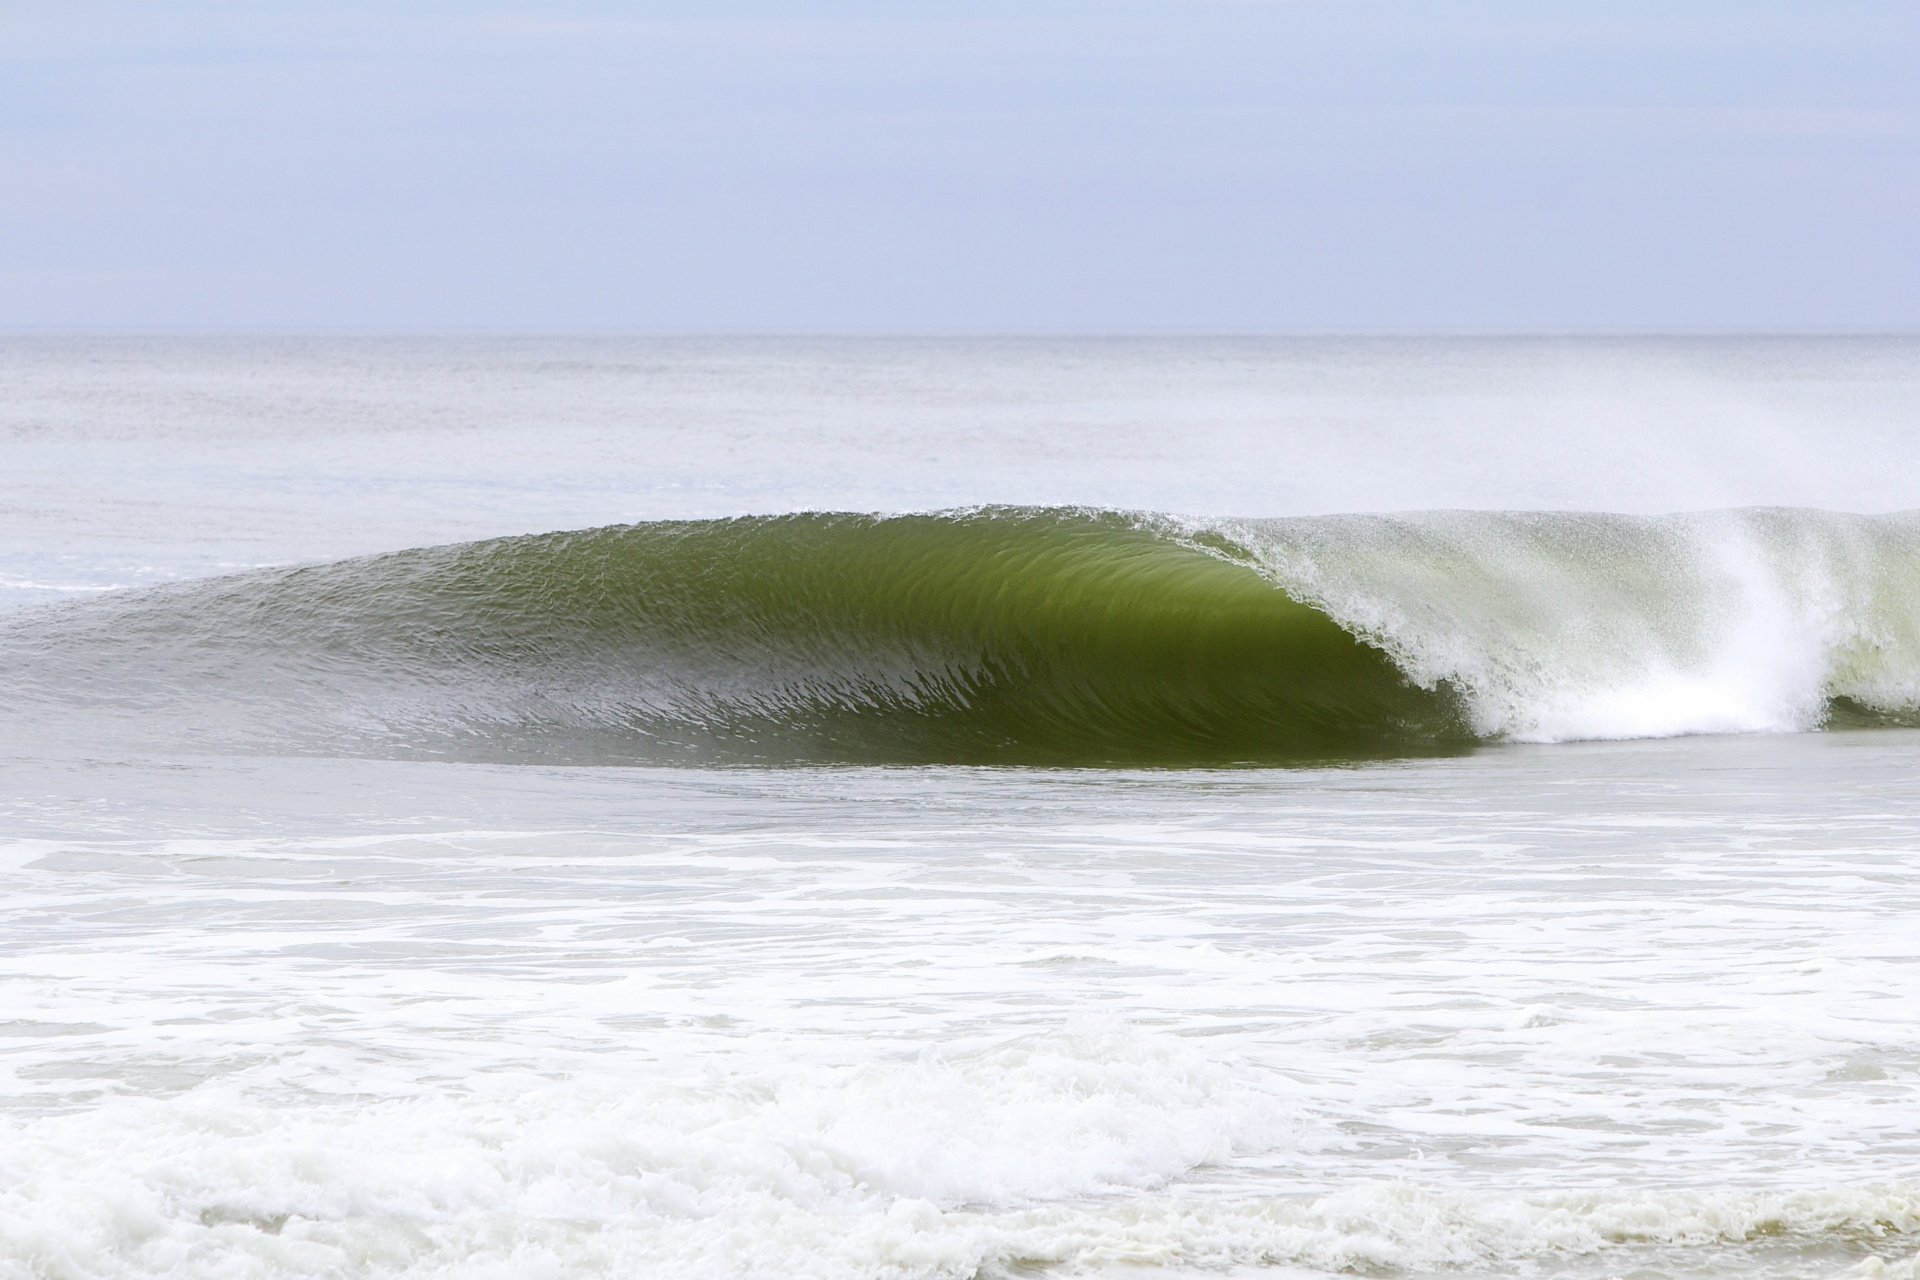 Ben Currie's photo of New Jersey Hurricane